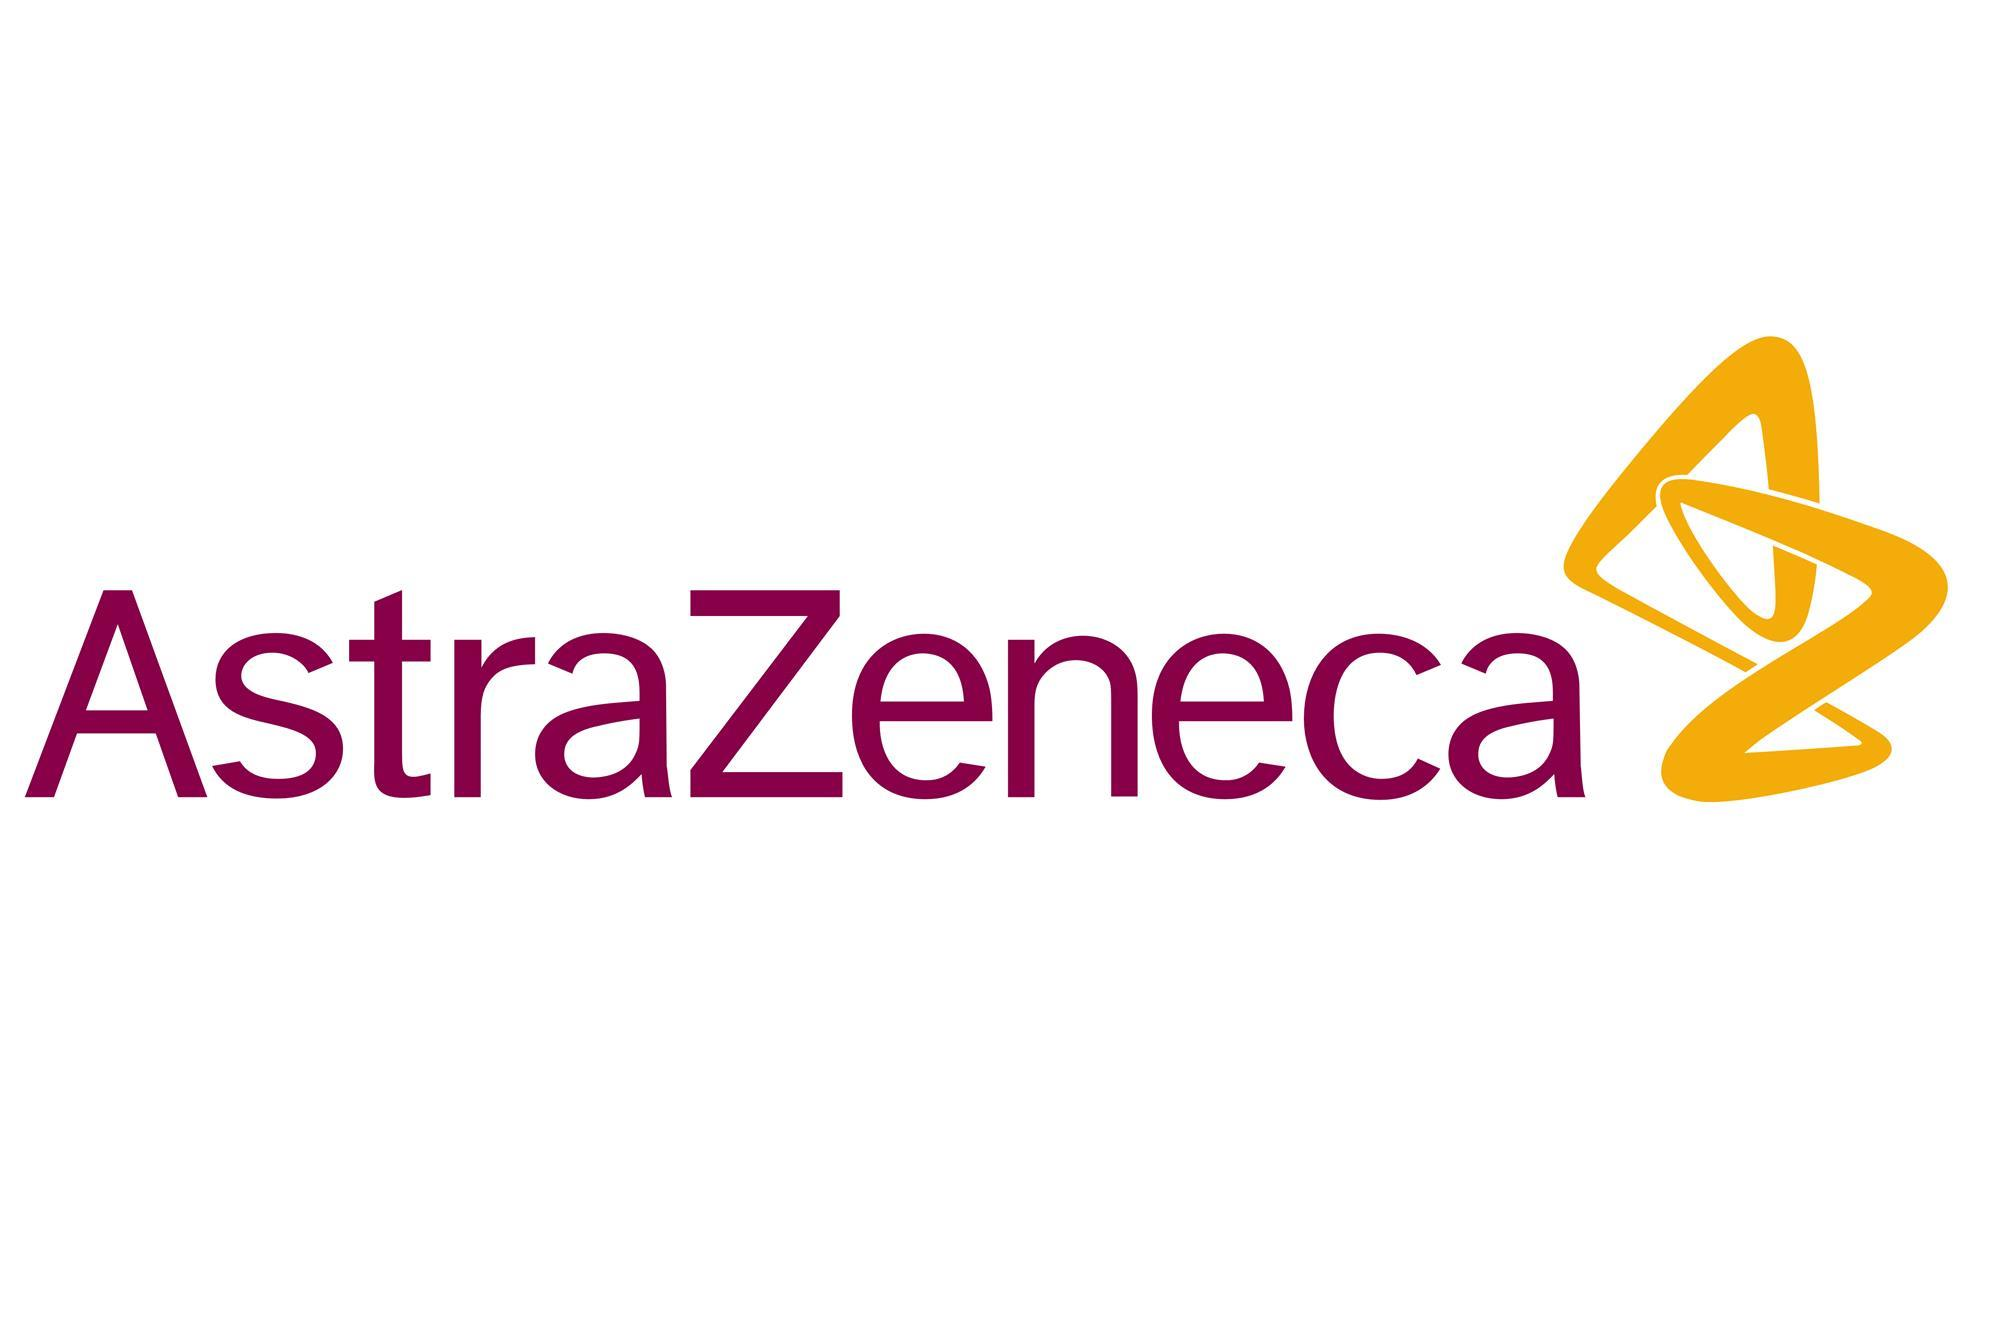 AstraZeneca to make billion COVID antibody dosages if tests succeed